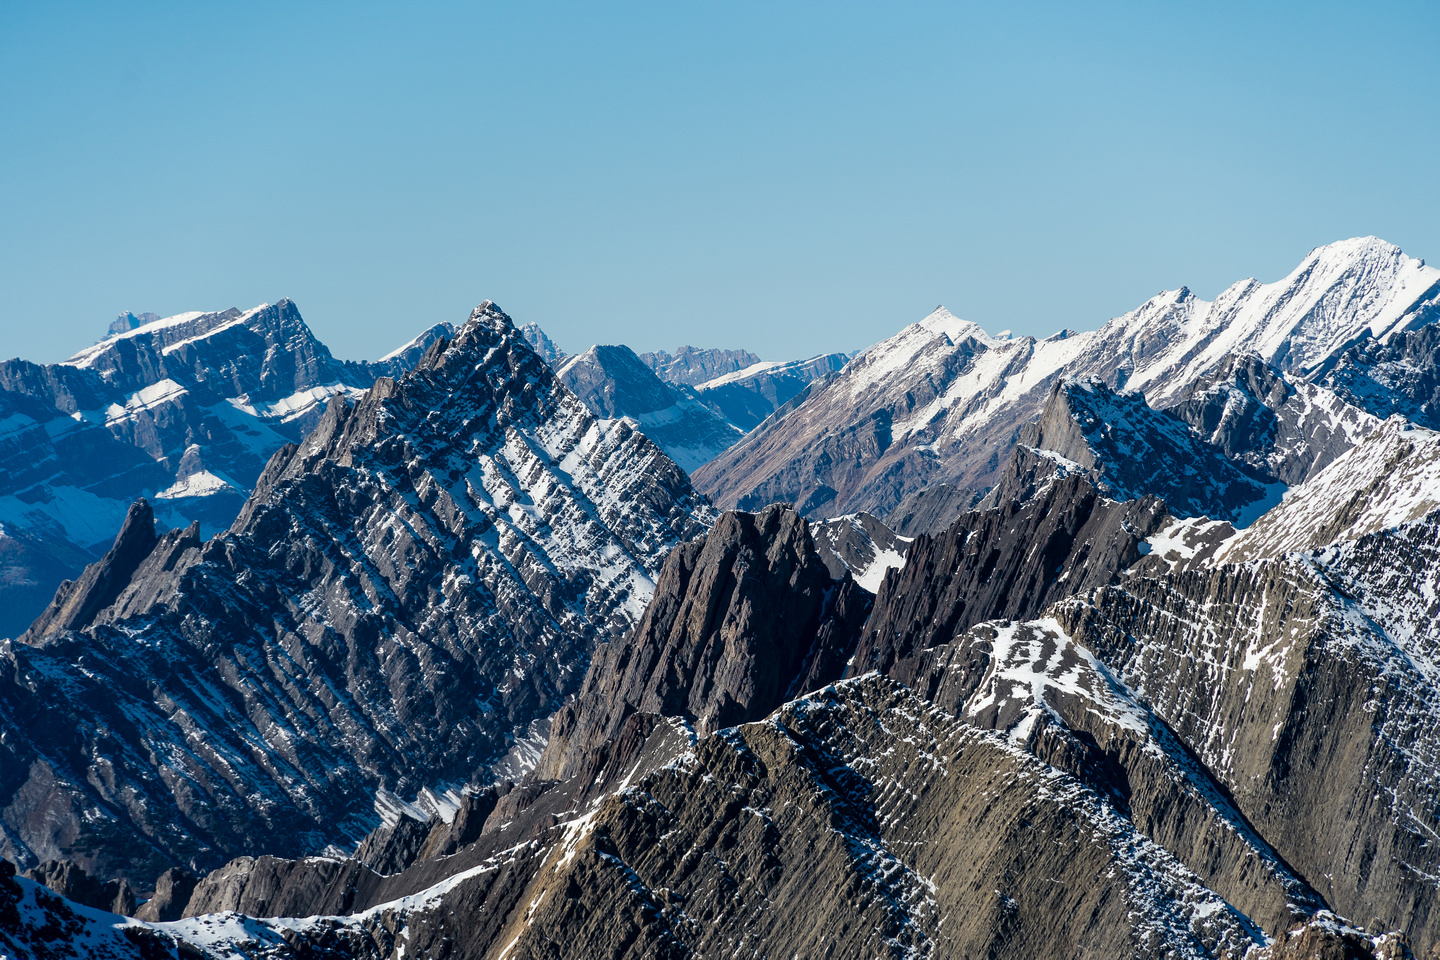 Mount Ishbel at foreground left with Pulsatilla at distant left. Noetic rising at right.